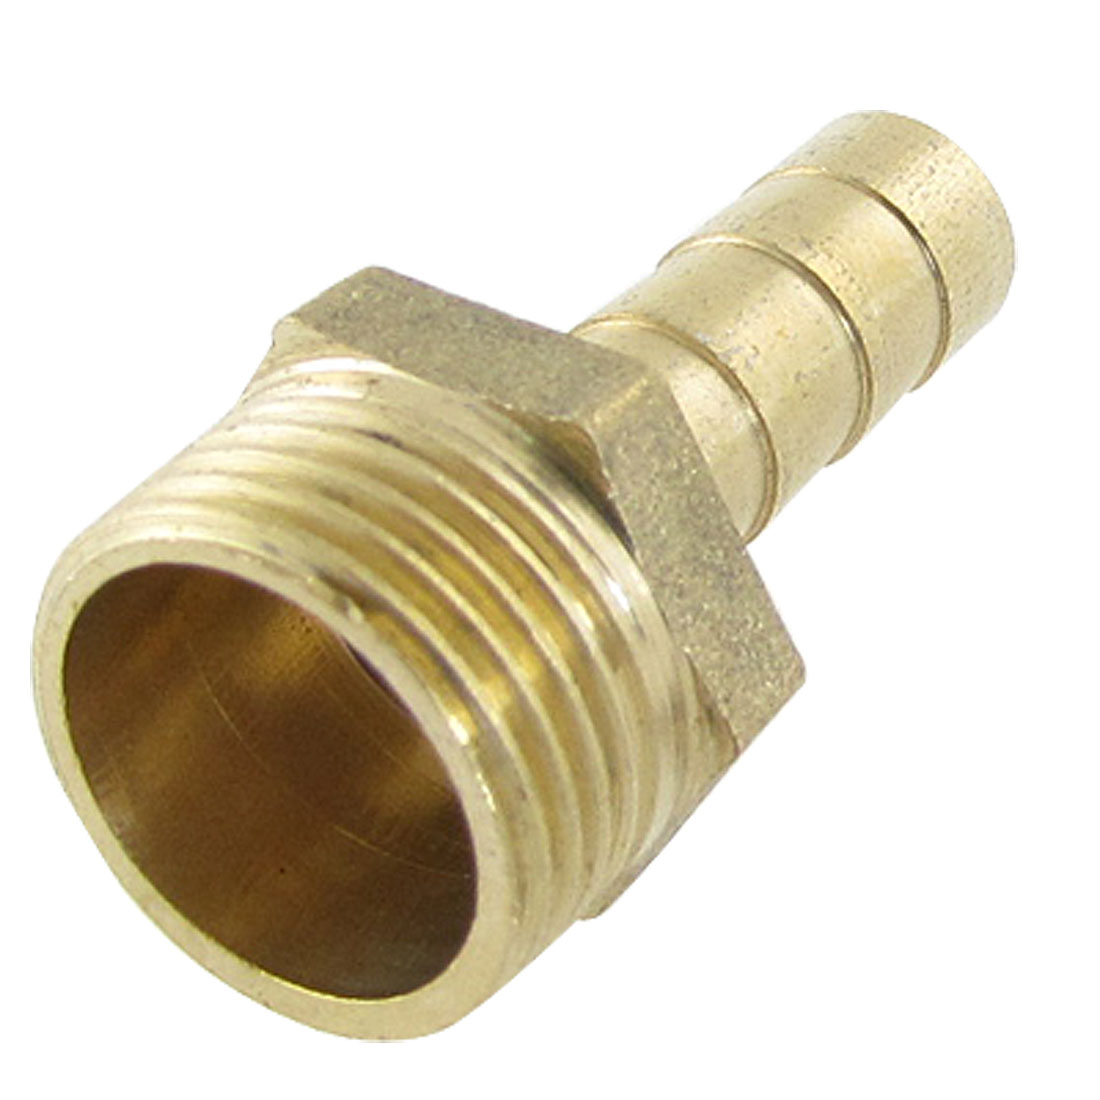 16-2mm-OD-Threaded-8mm-Air-Pneumatic-Gas-Hose-Barbed-Fitting-Coupling